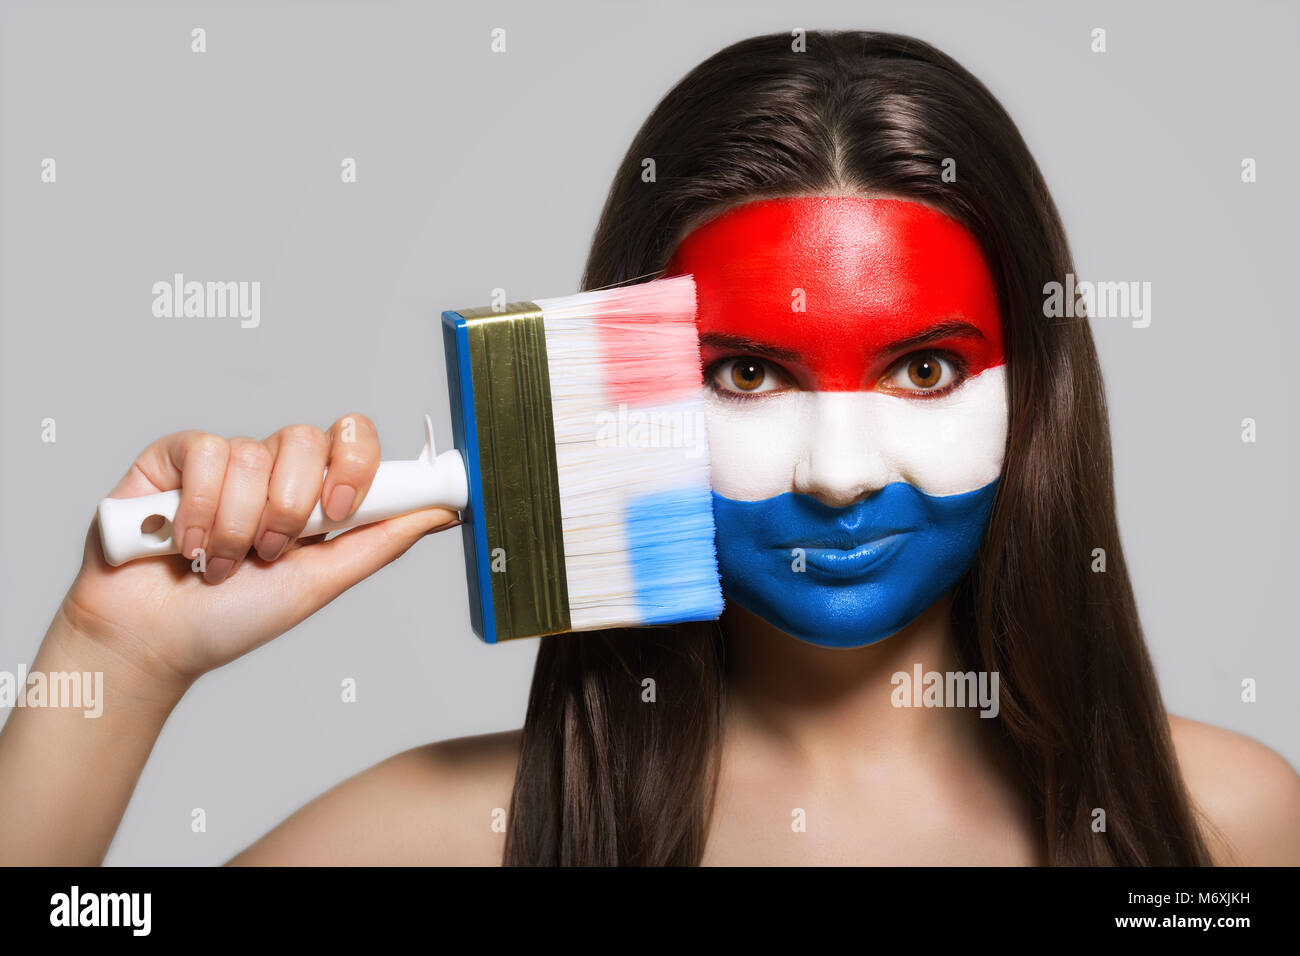 bodypainting stock photos amp bodypainting stock images alamy